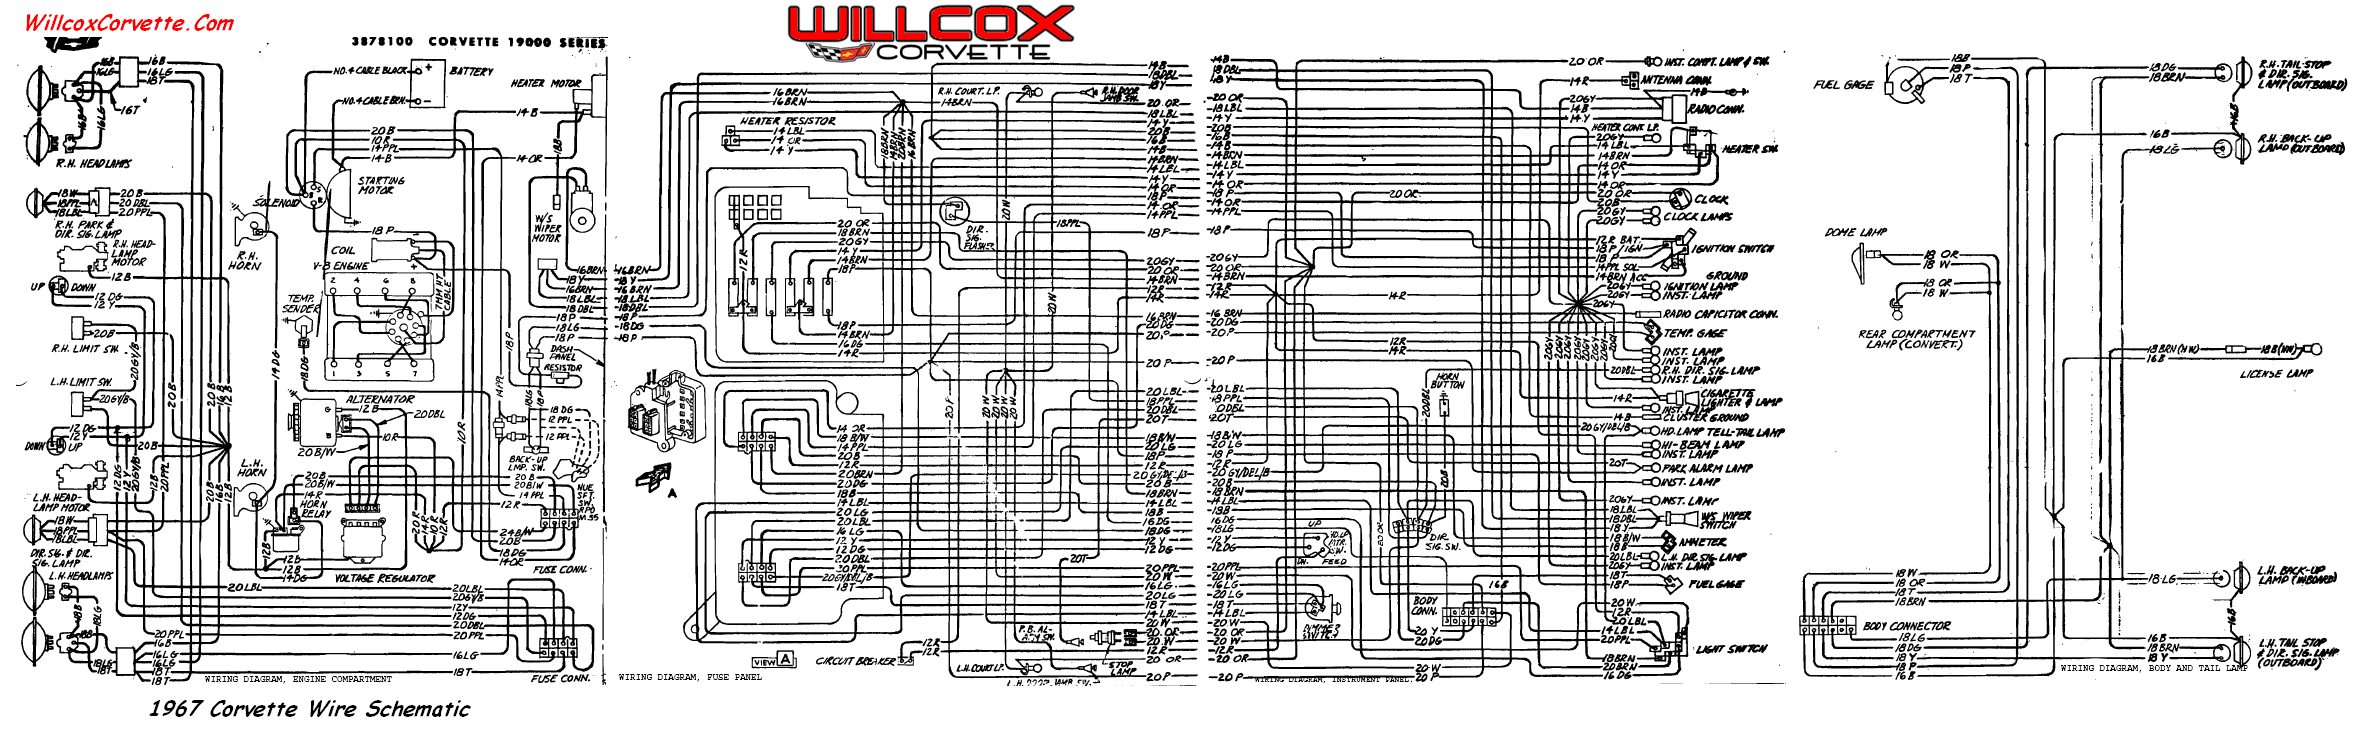 67 wire schematic for tracing wires 1967 corvette wiring diagram (tracer schematic) willcox corvette c3 corvette wiring diagram at gsmx.co